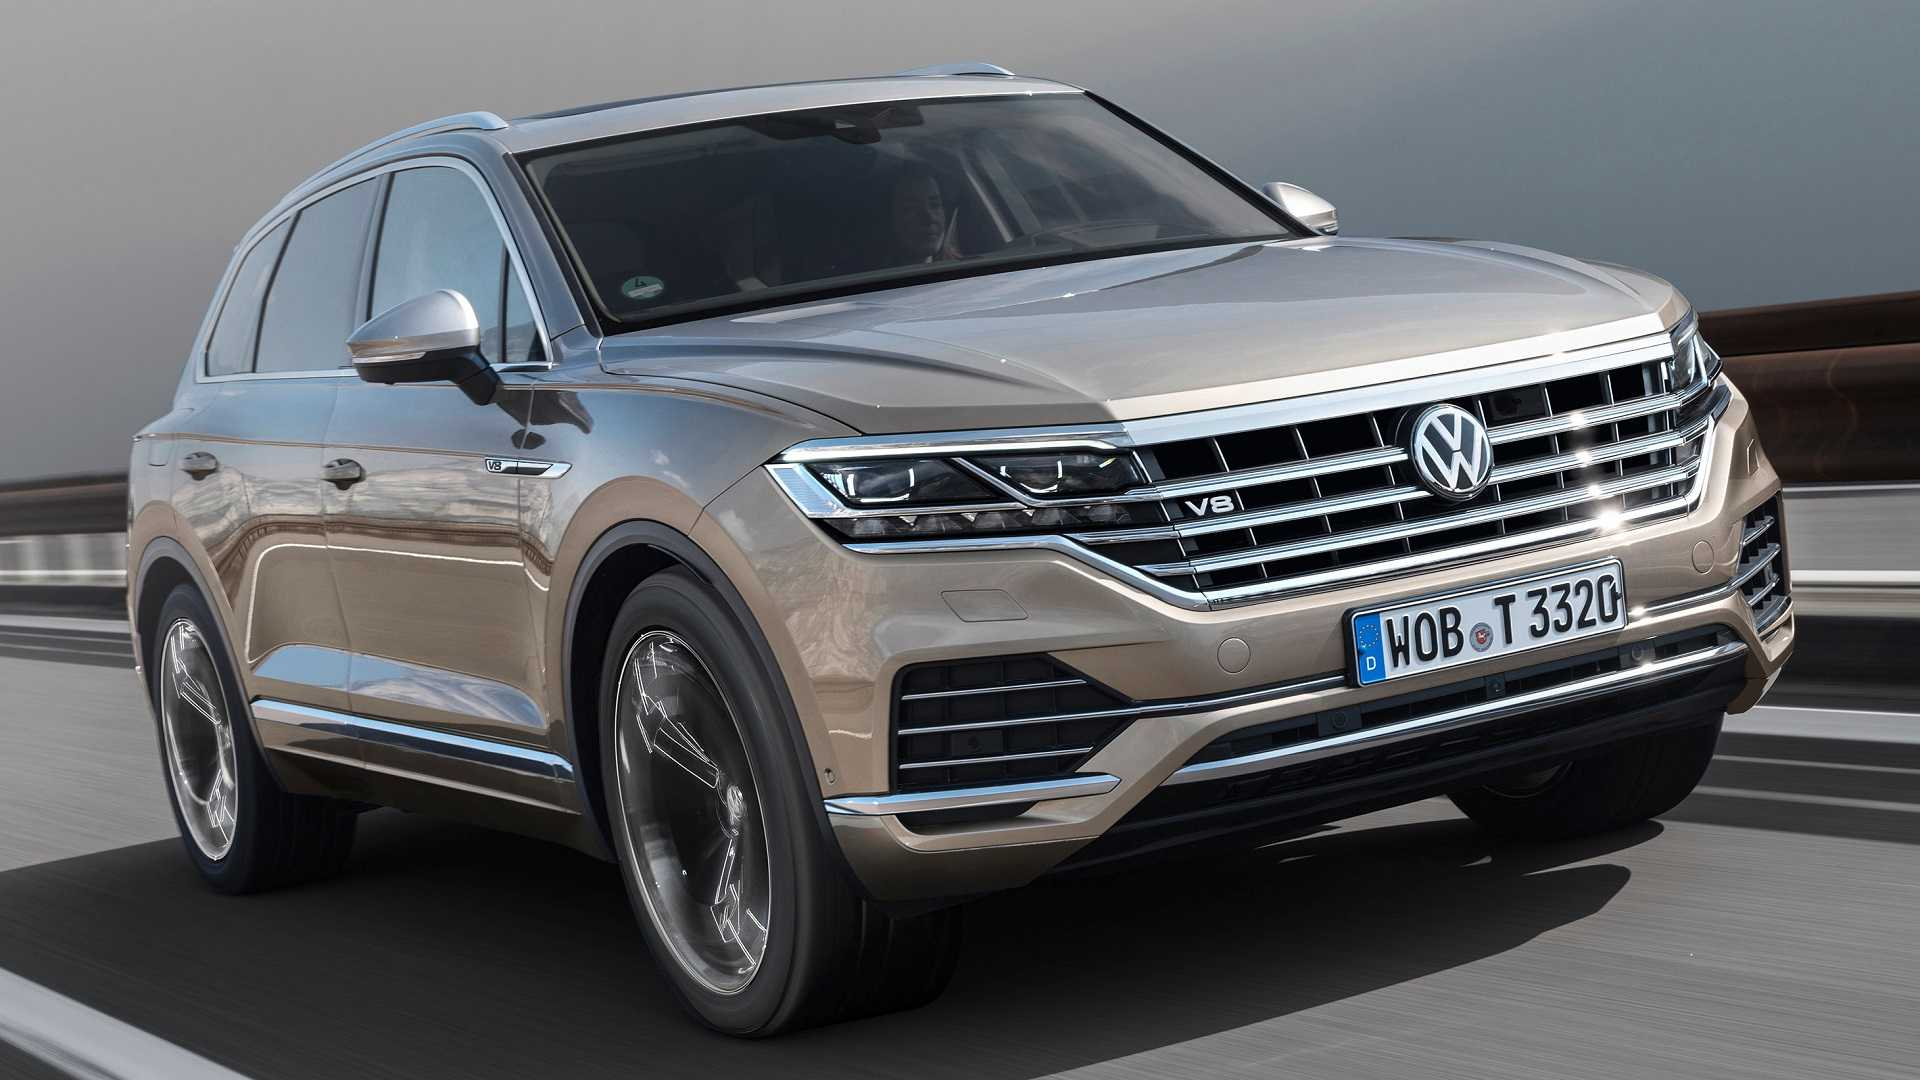 30 All New 2020 Vw Touareg Tdi Price And Review